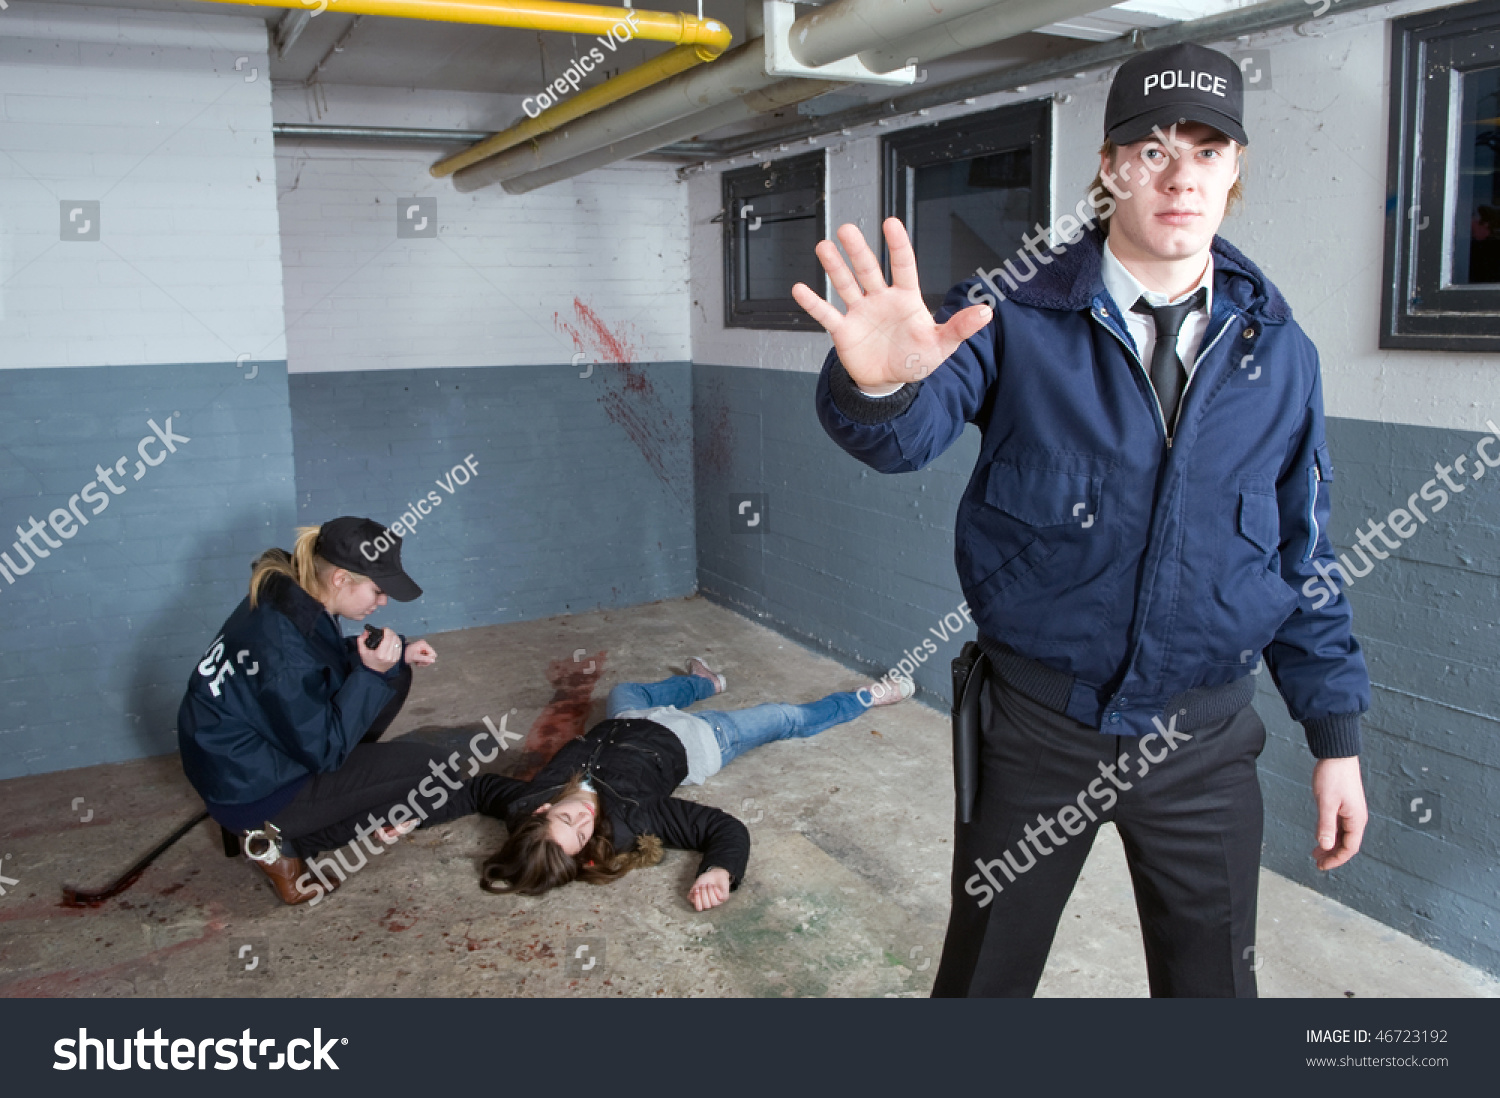 Crime Scene Photos Of Murdered Girls Police Officer Keeping...